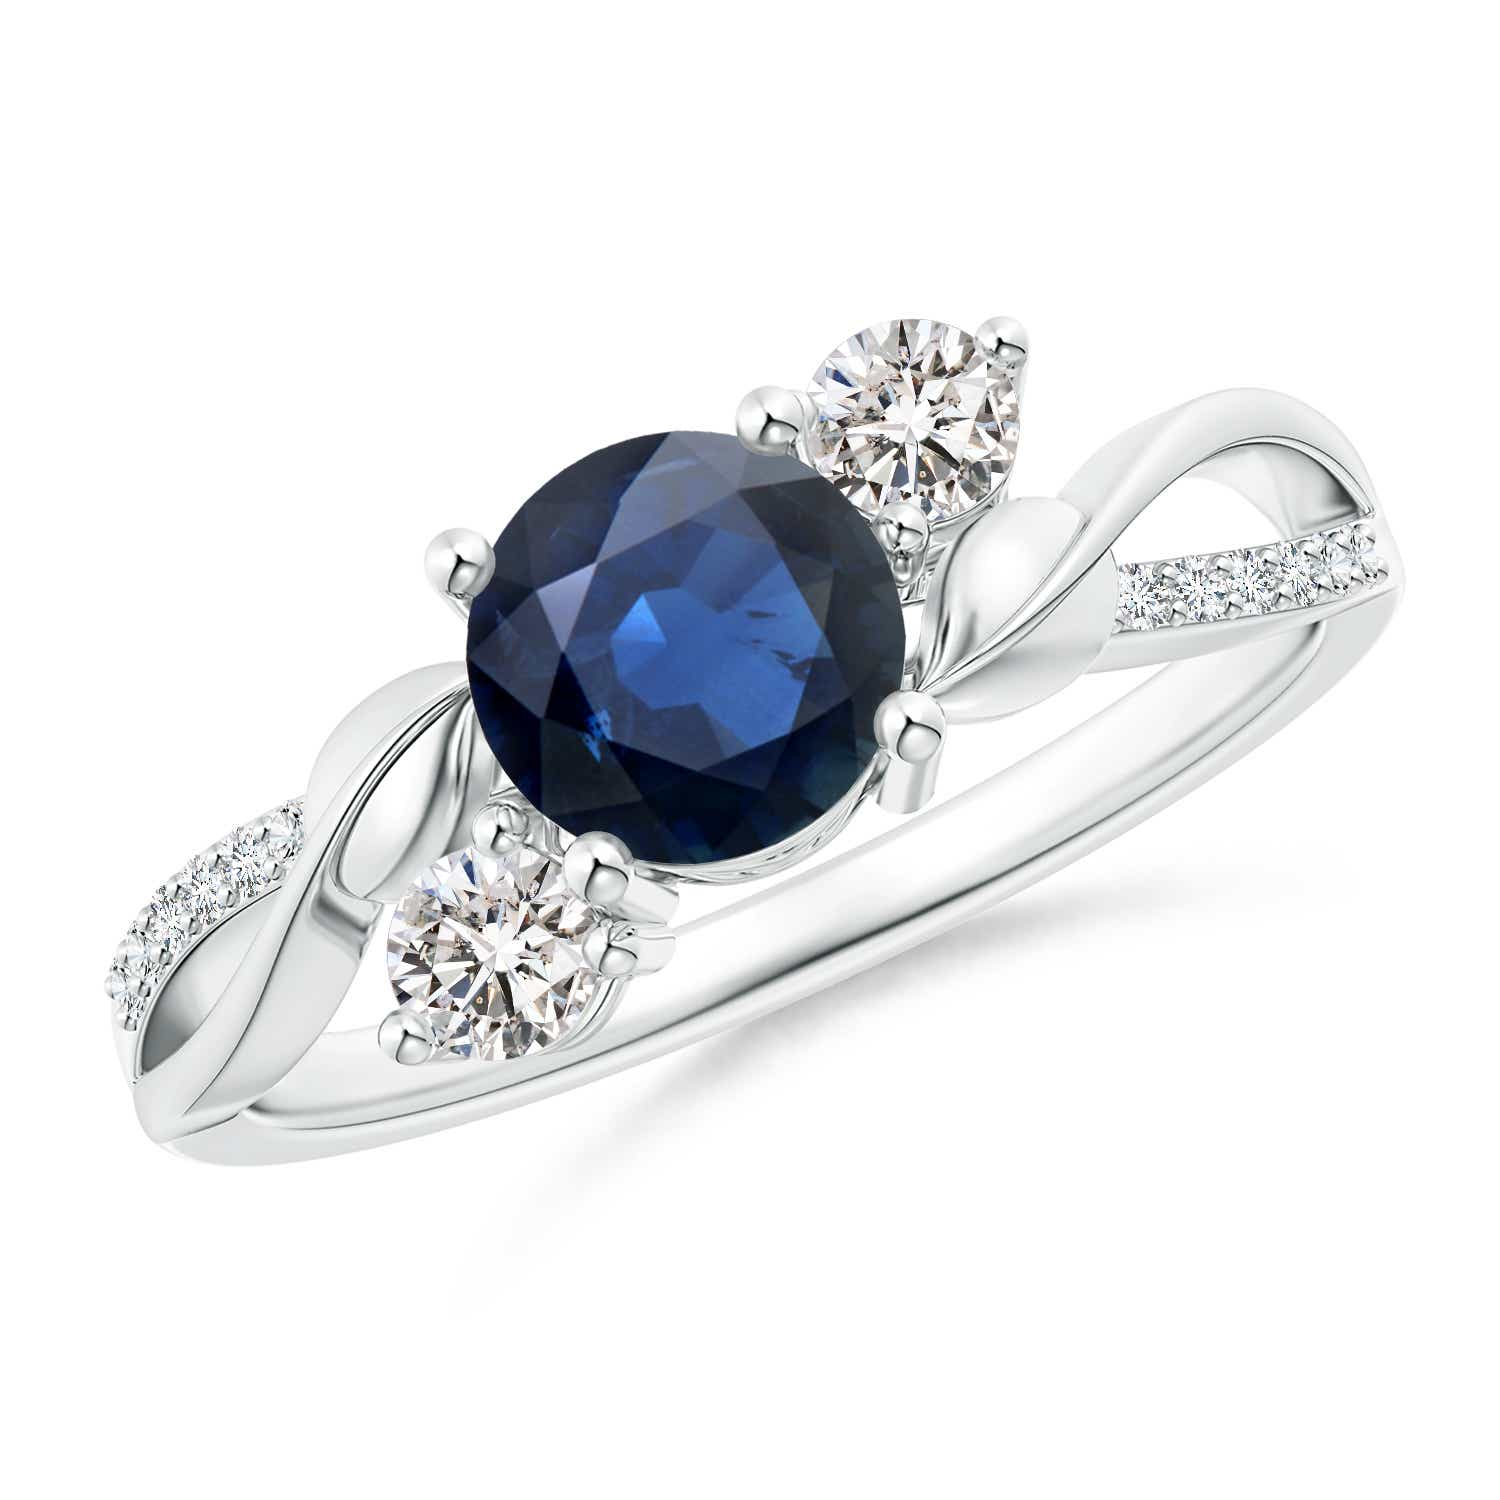 Angara Natural Sapphire Engagement Ring in 14k White Gold 32ZEWMxzE